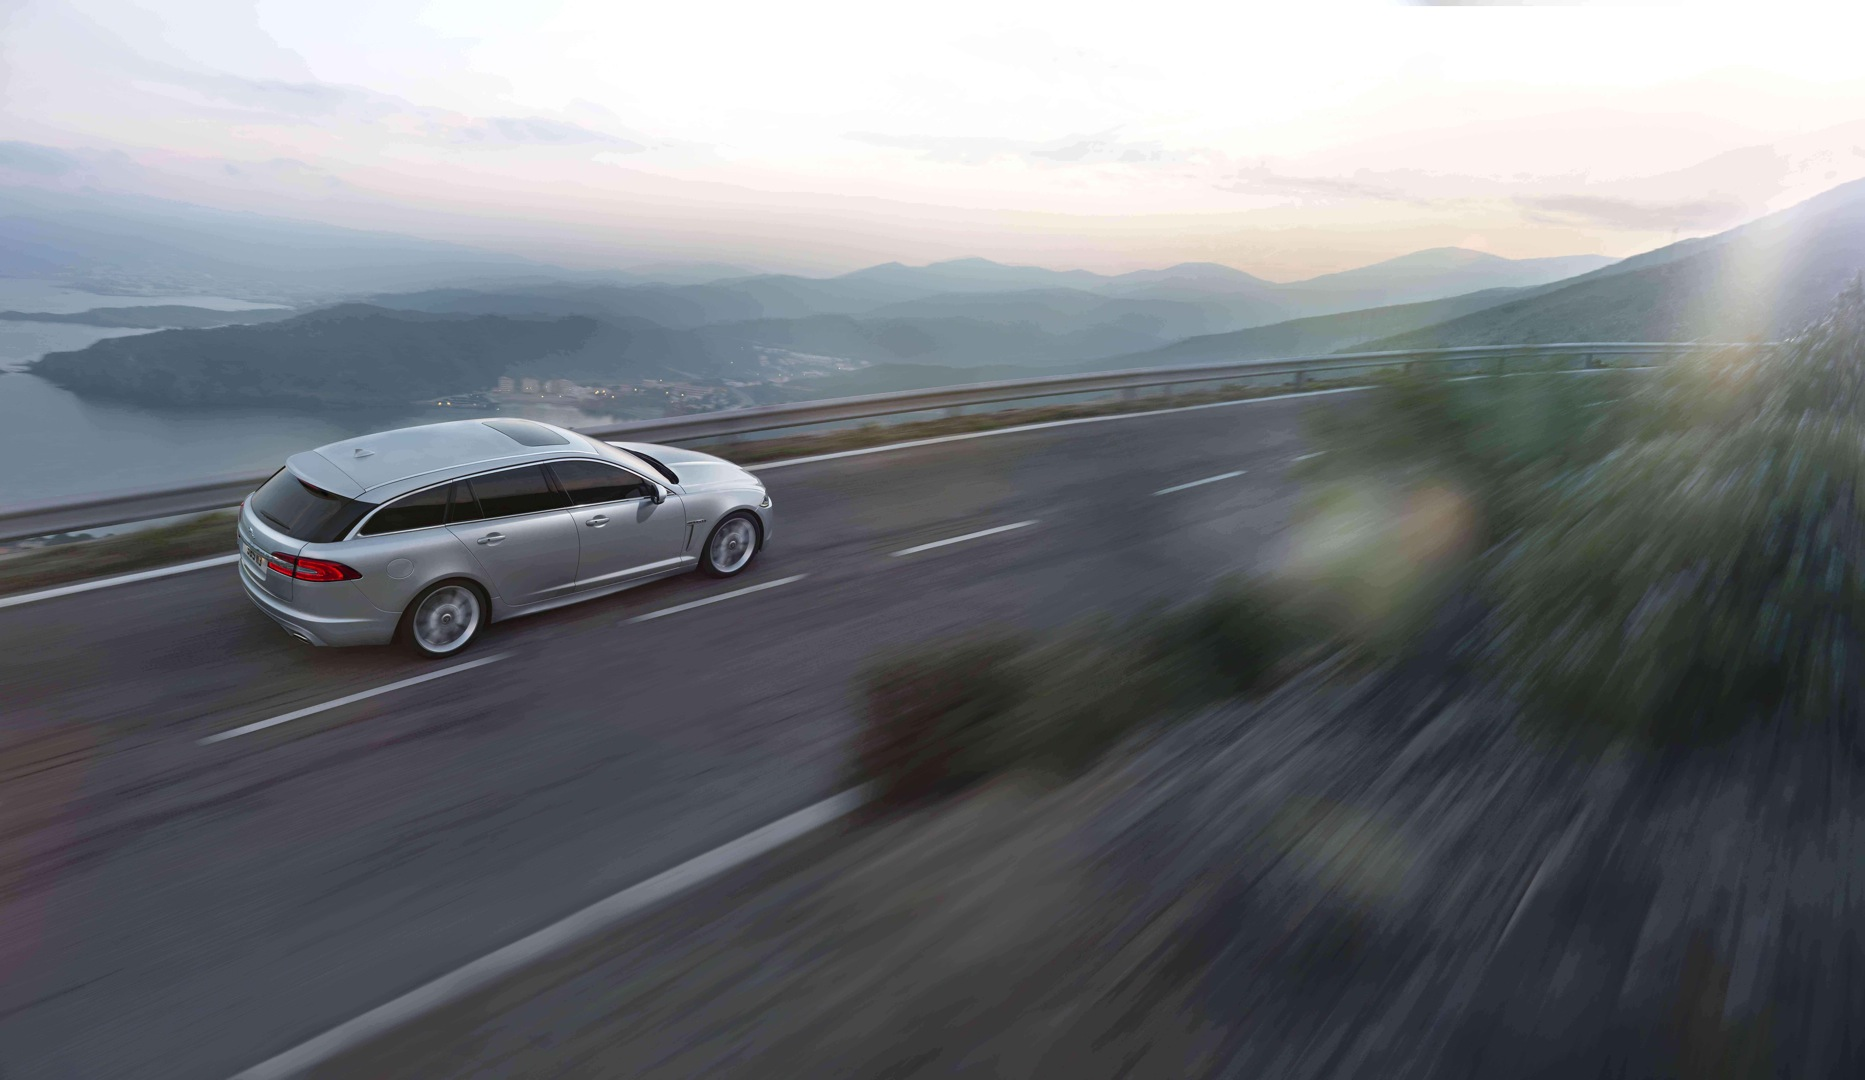 New Jaguar XF Sportbrake broadens appeal of the XF range to a wider market of business car users